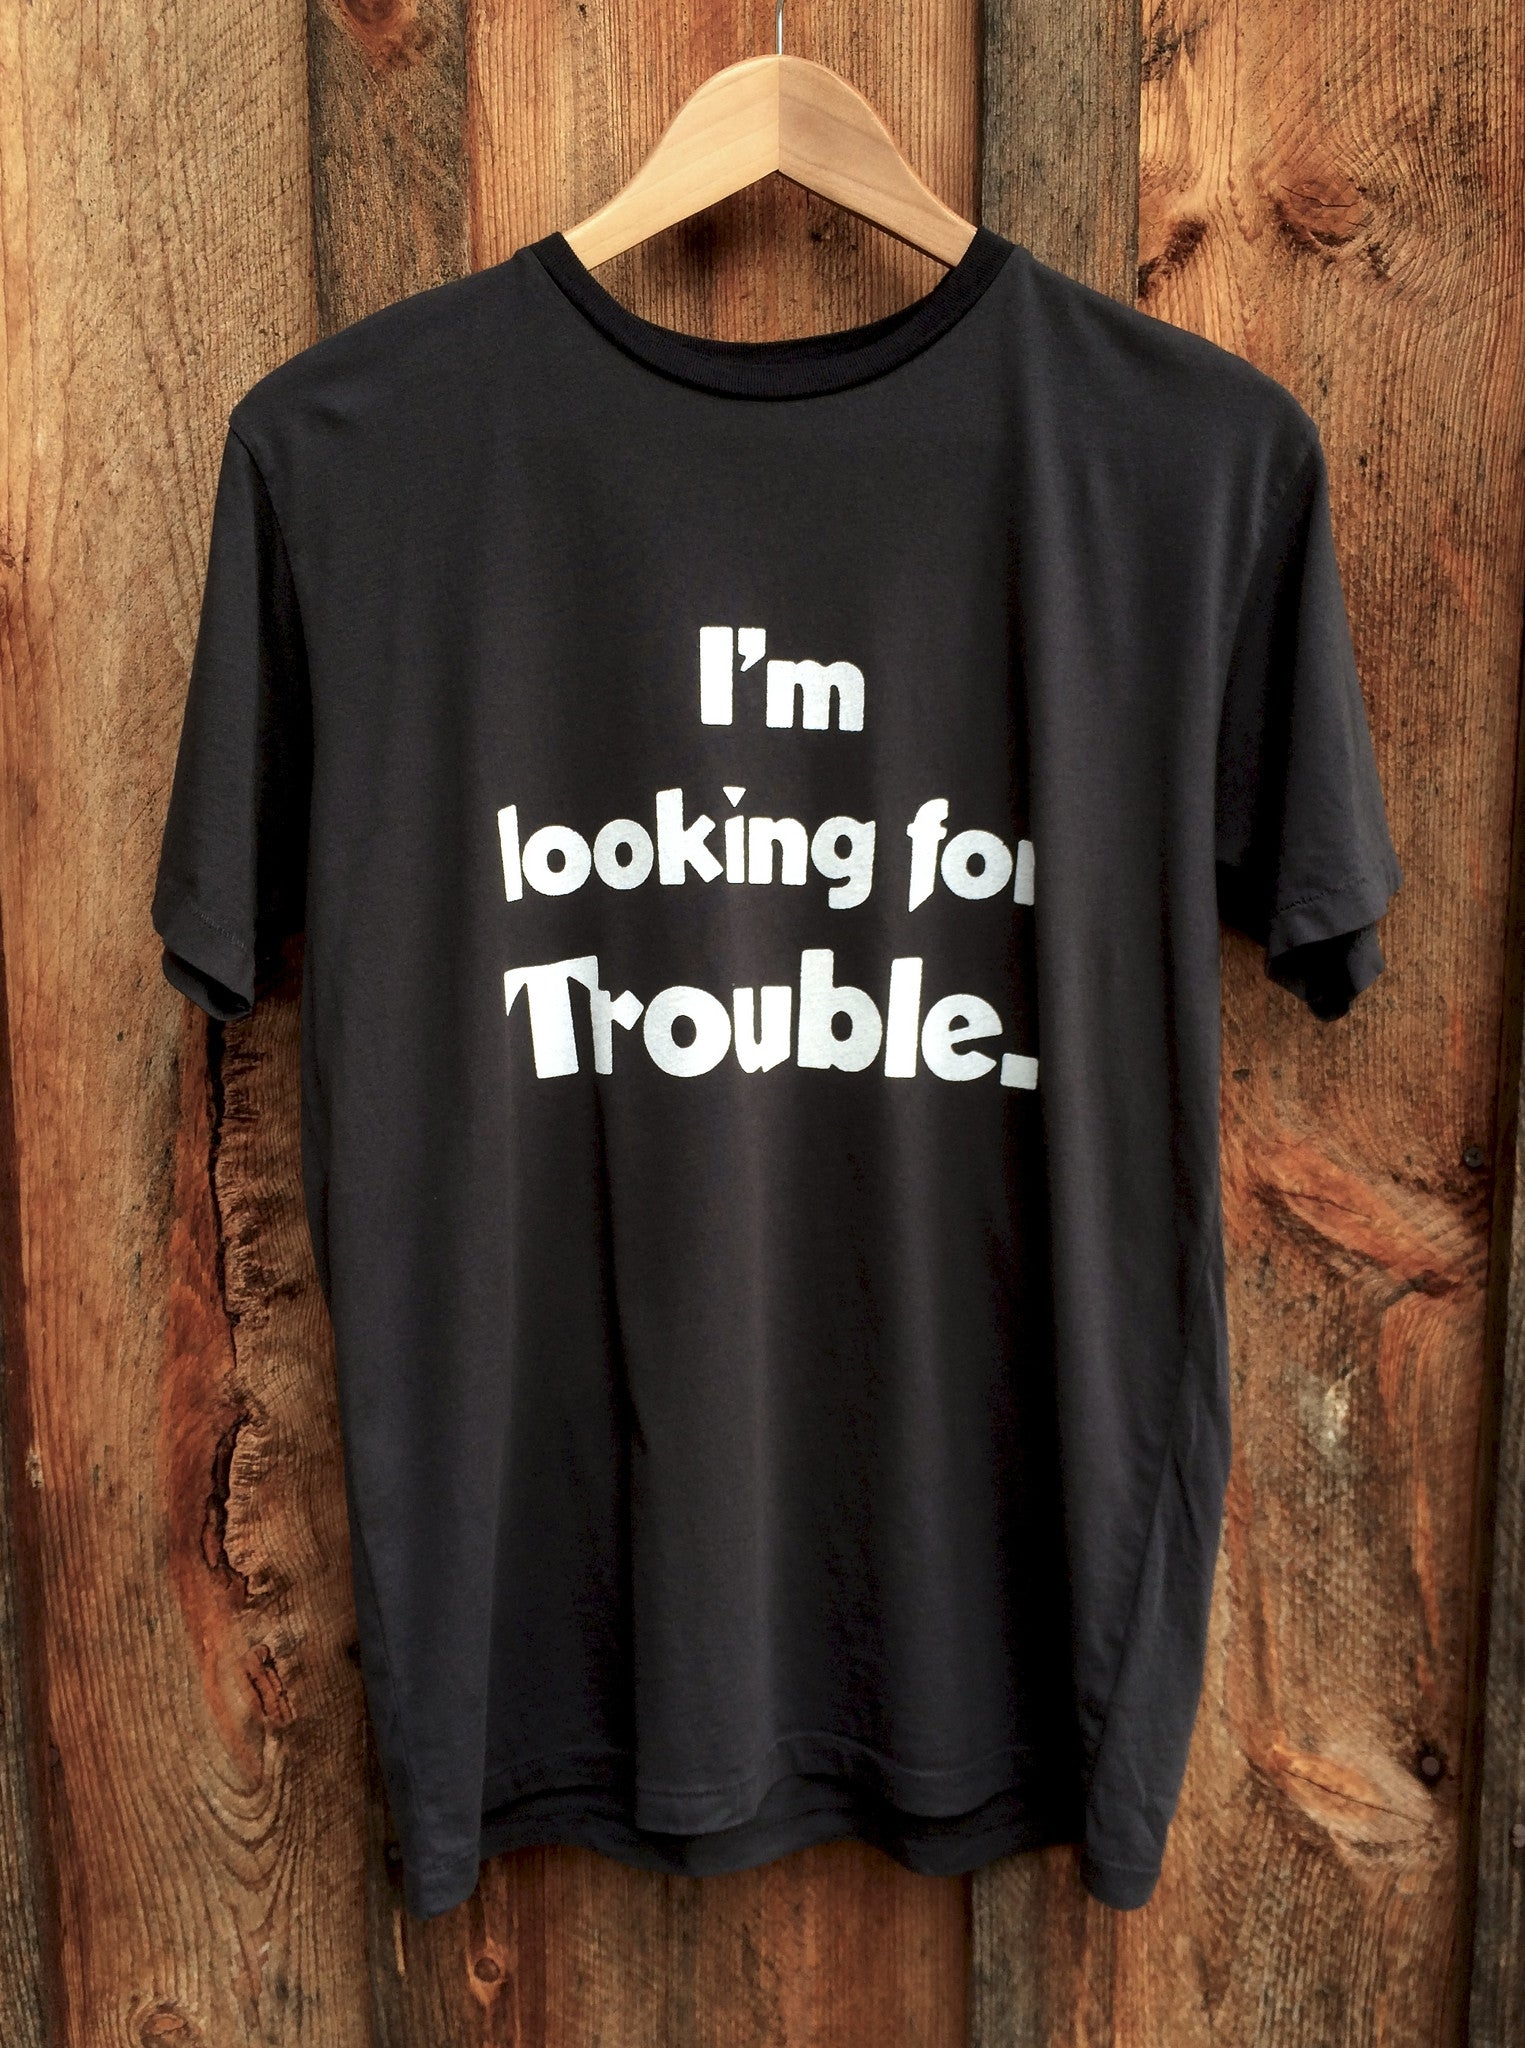 Lookin for Trouble Mens Blk/Wht